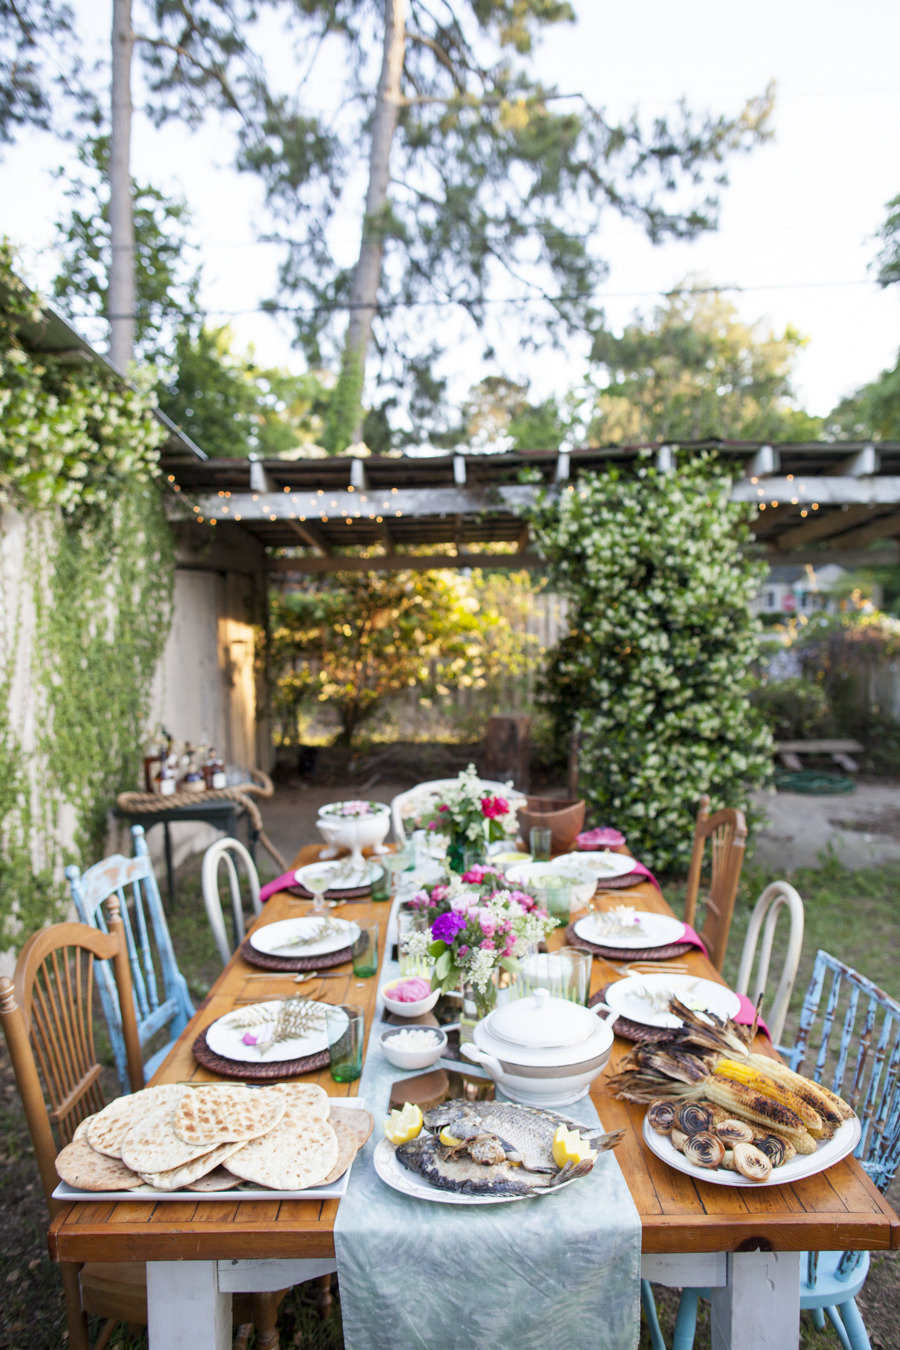 50 outdoor party ideas you should try out this summer for Outdoor table decor ideas